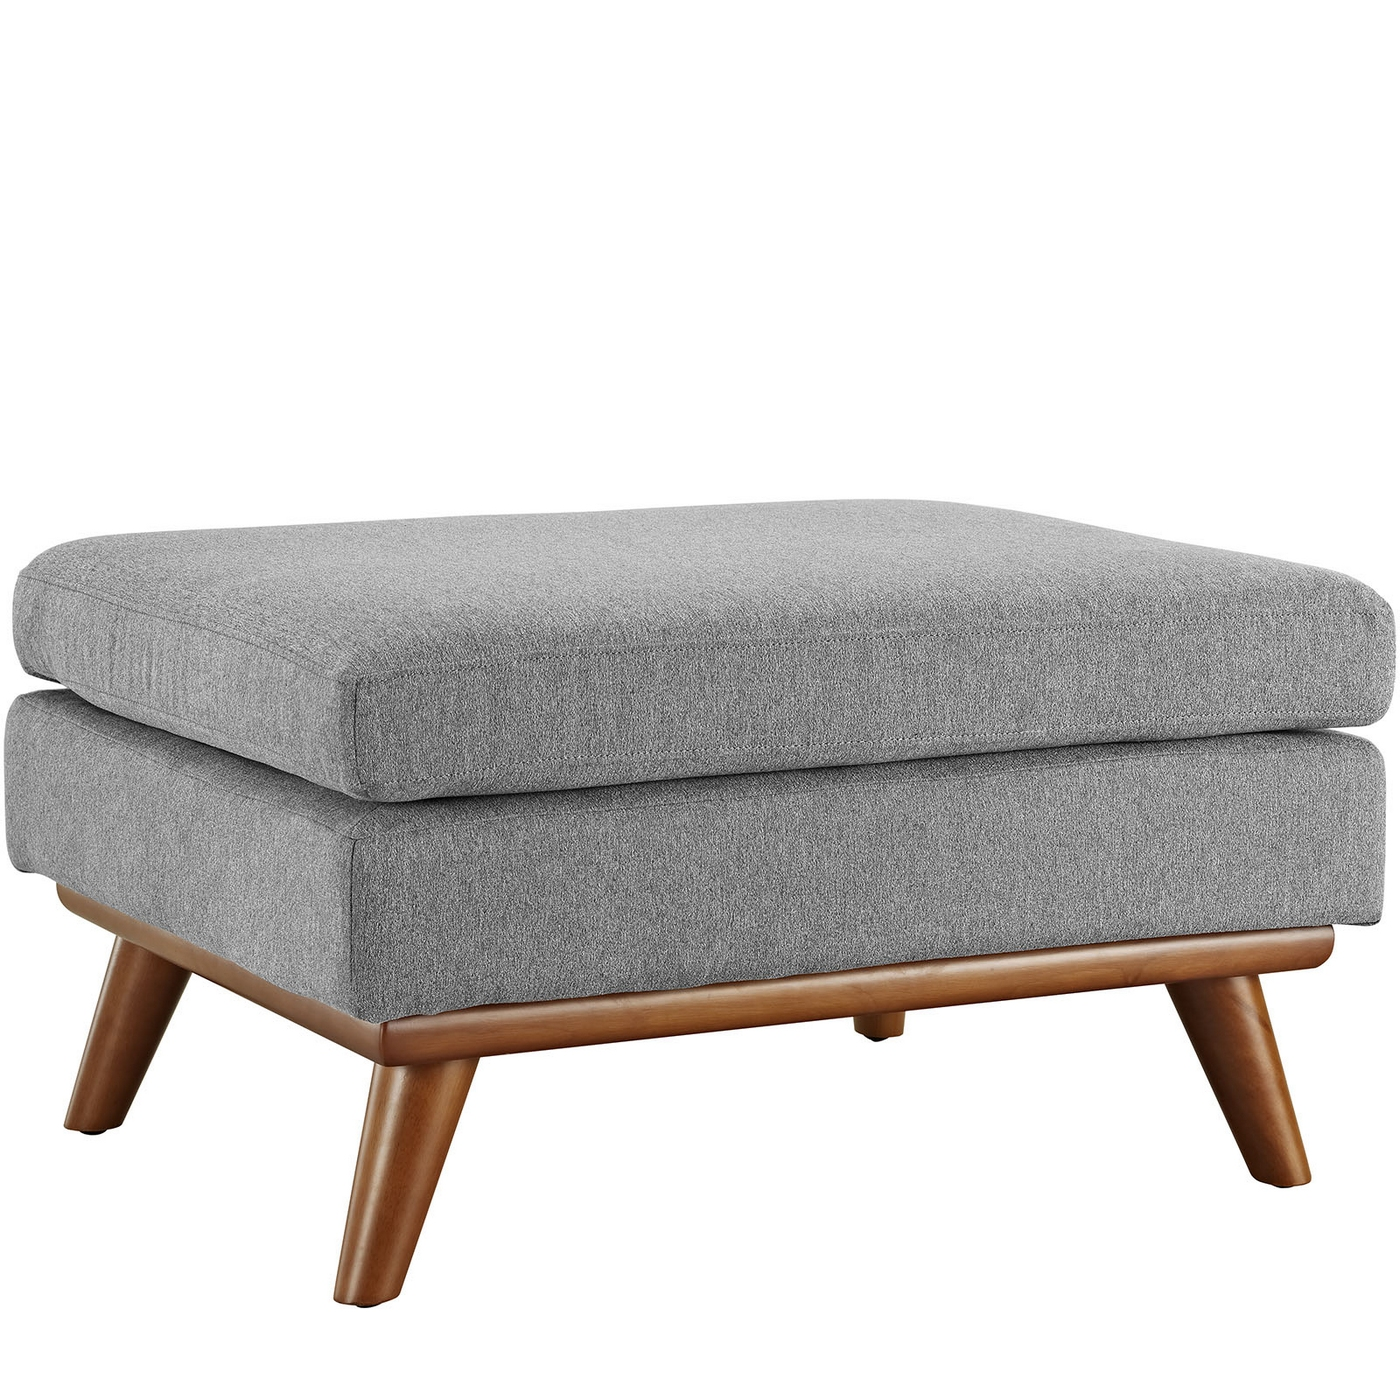 Engage Modern Button-tufted Upholstered Corner Ottoman